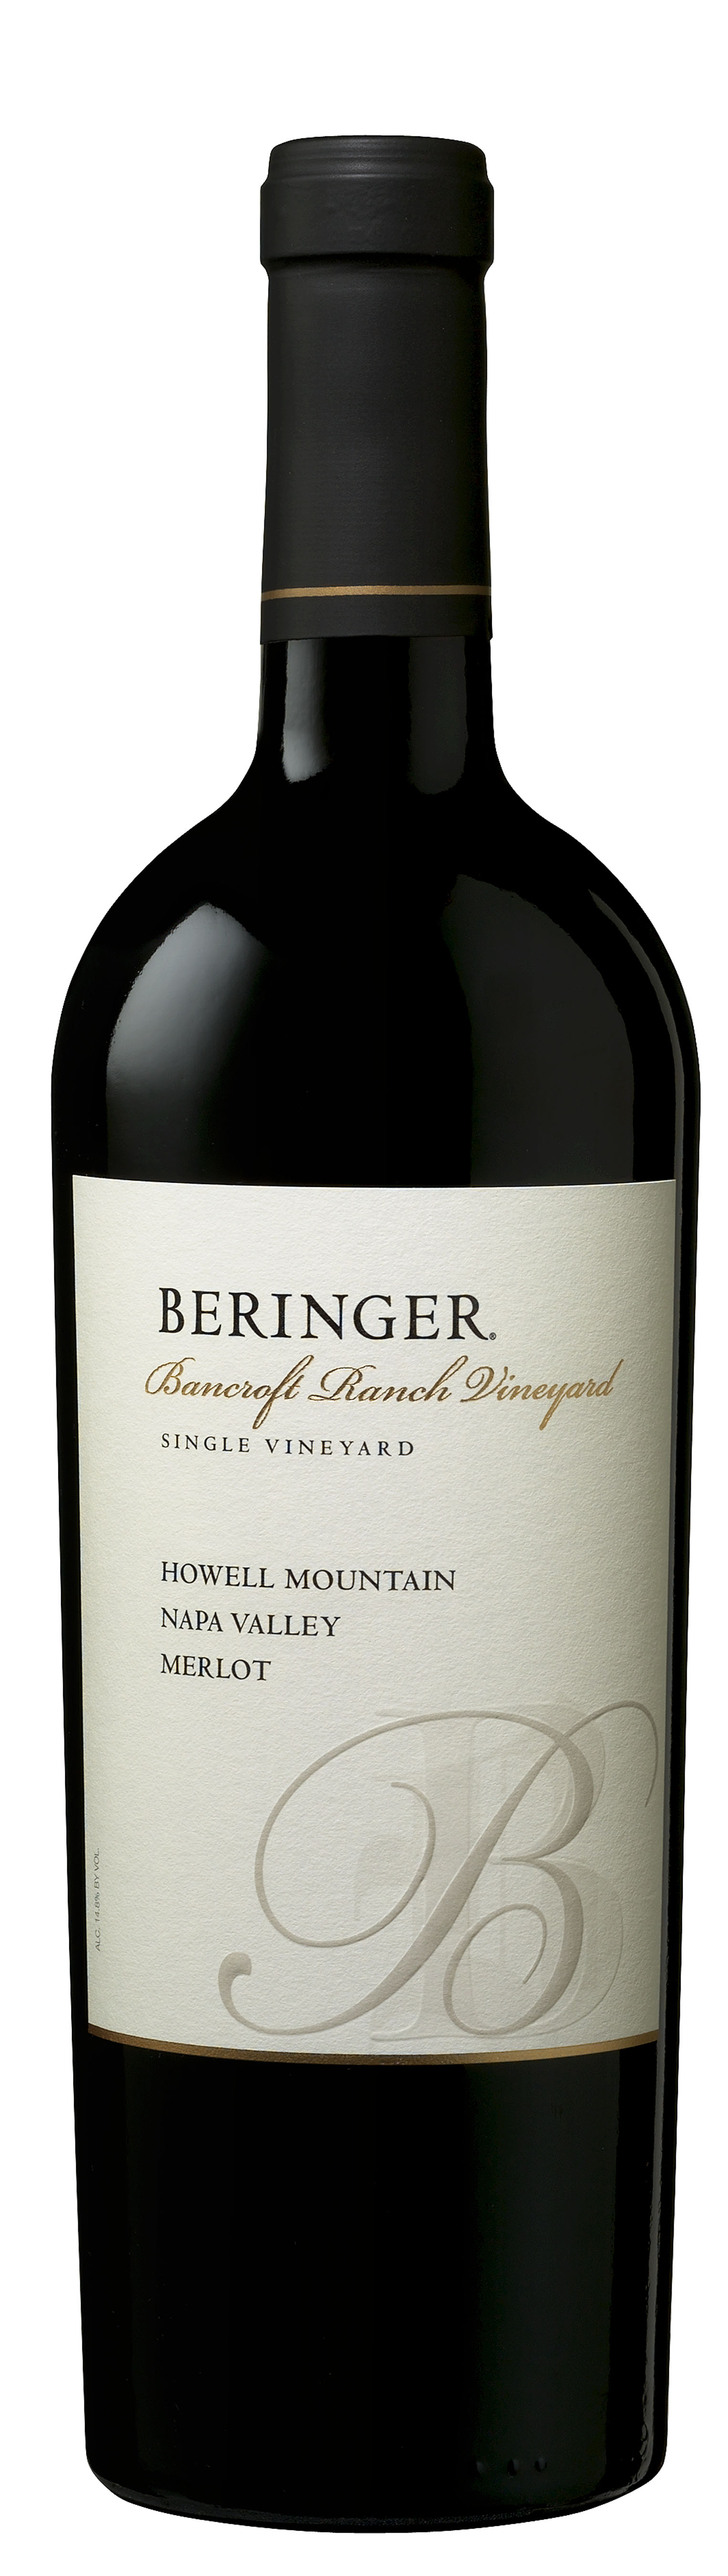 Beringer Bancroft Ranch Single Vineyard Merlot 2005